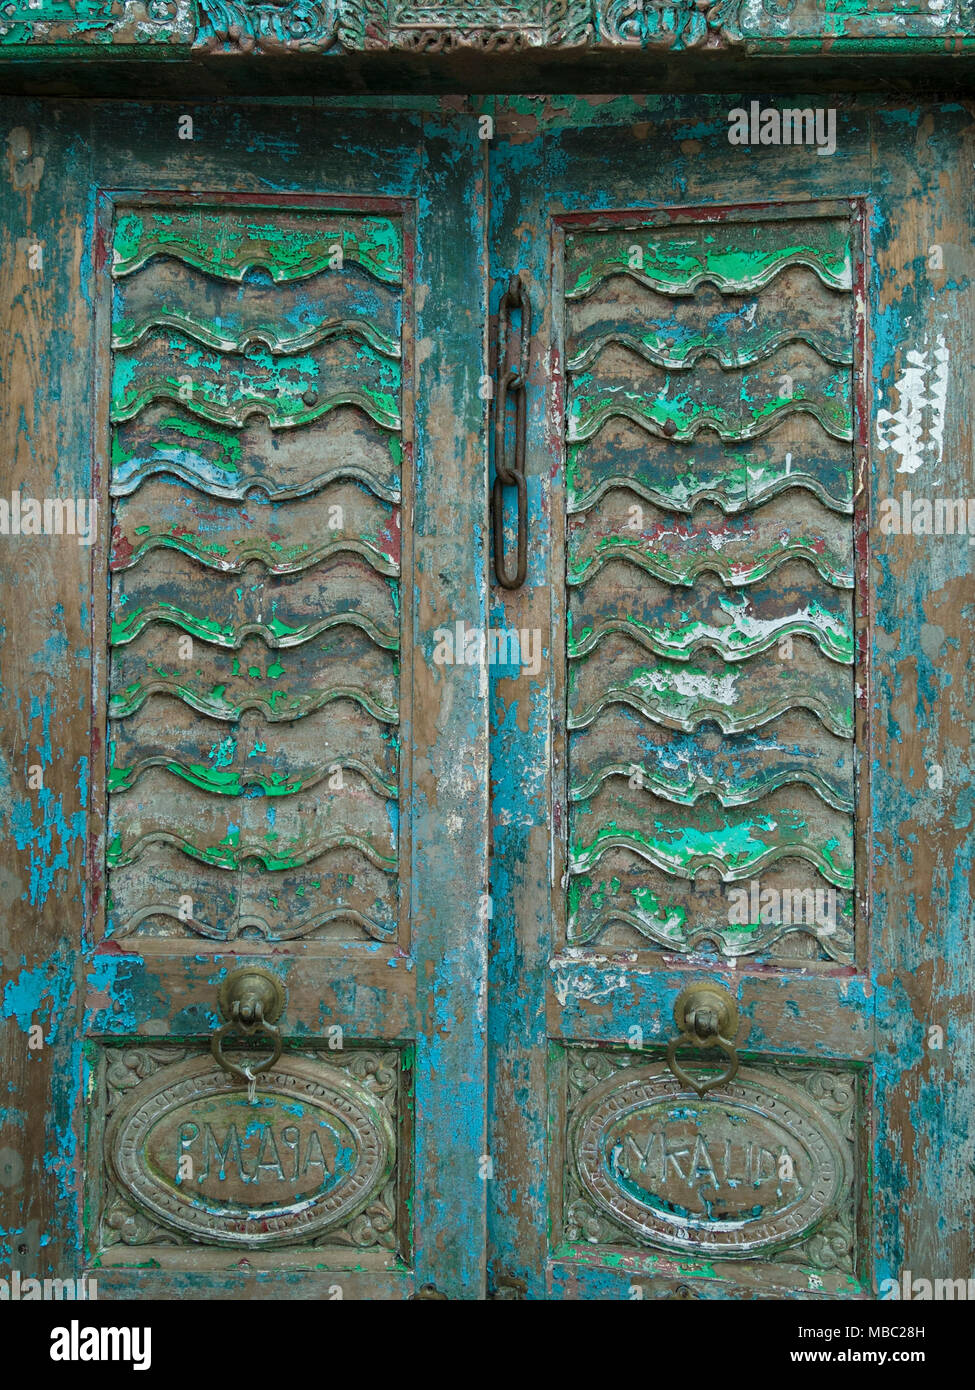 Old distressed ornate antique wooden double doors in Garden Classics reclamation Yard, Ashwell, Rutland, UK - Stock Image